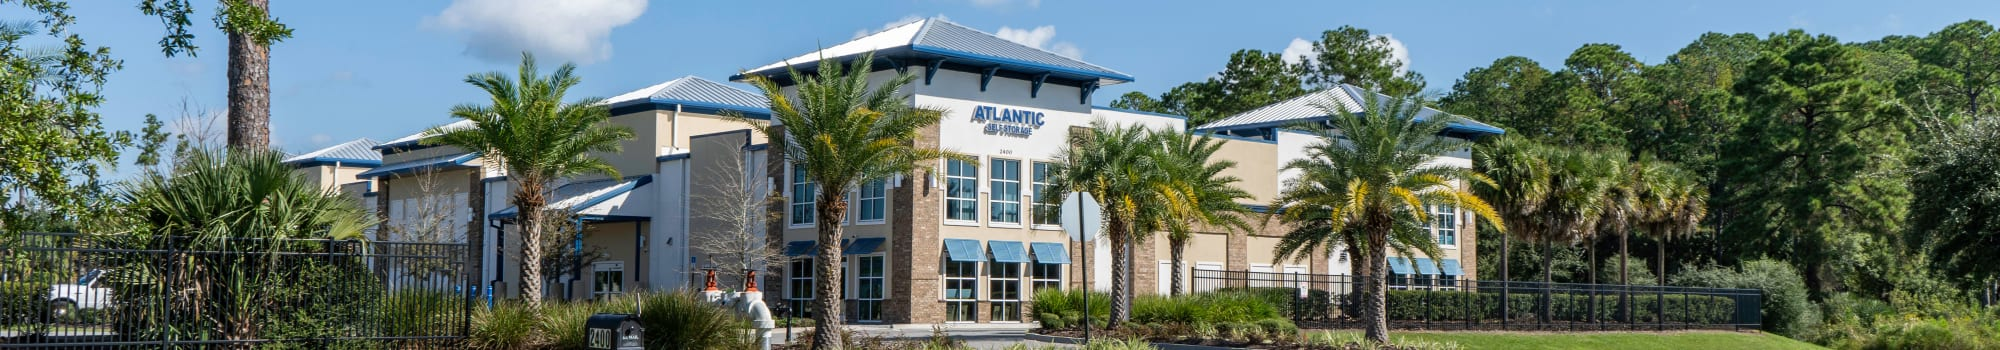 Contact us at Atlantic Self Storage for more information about our self storage locations